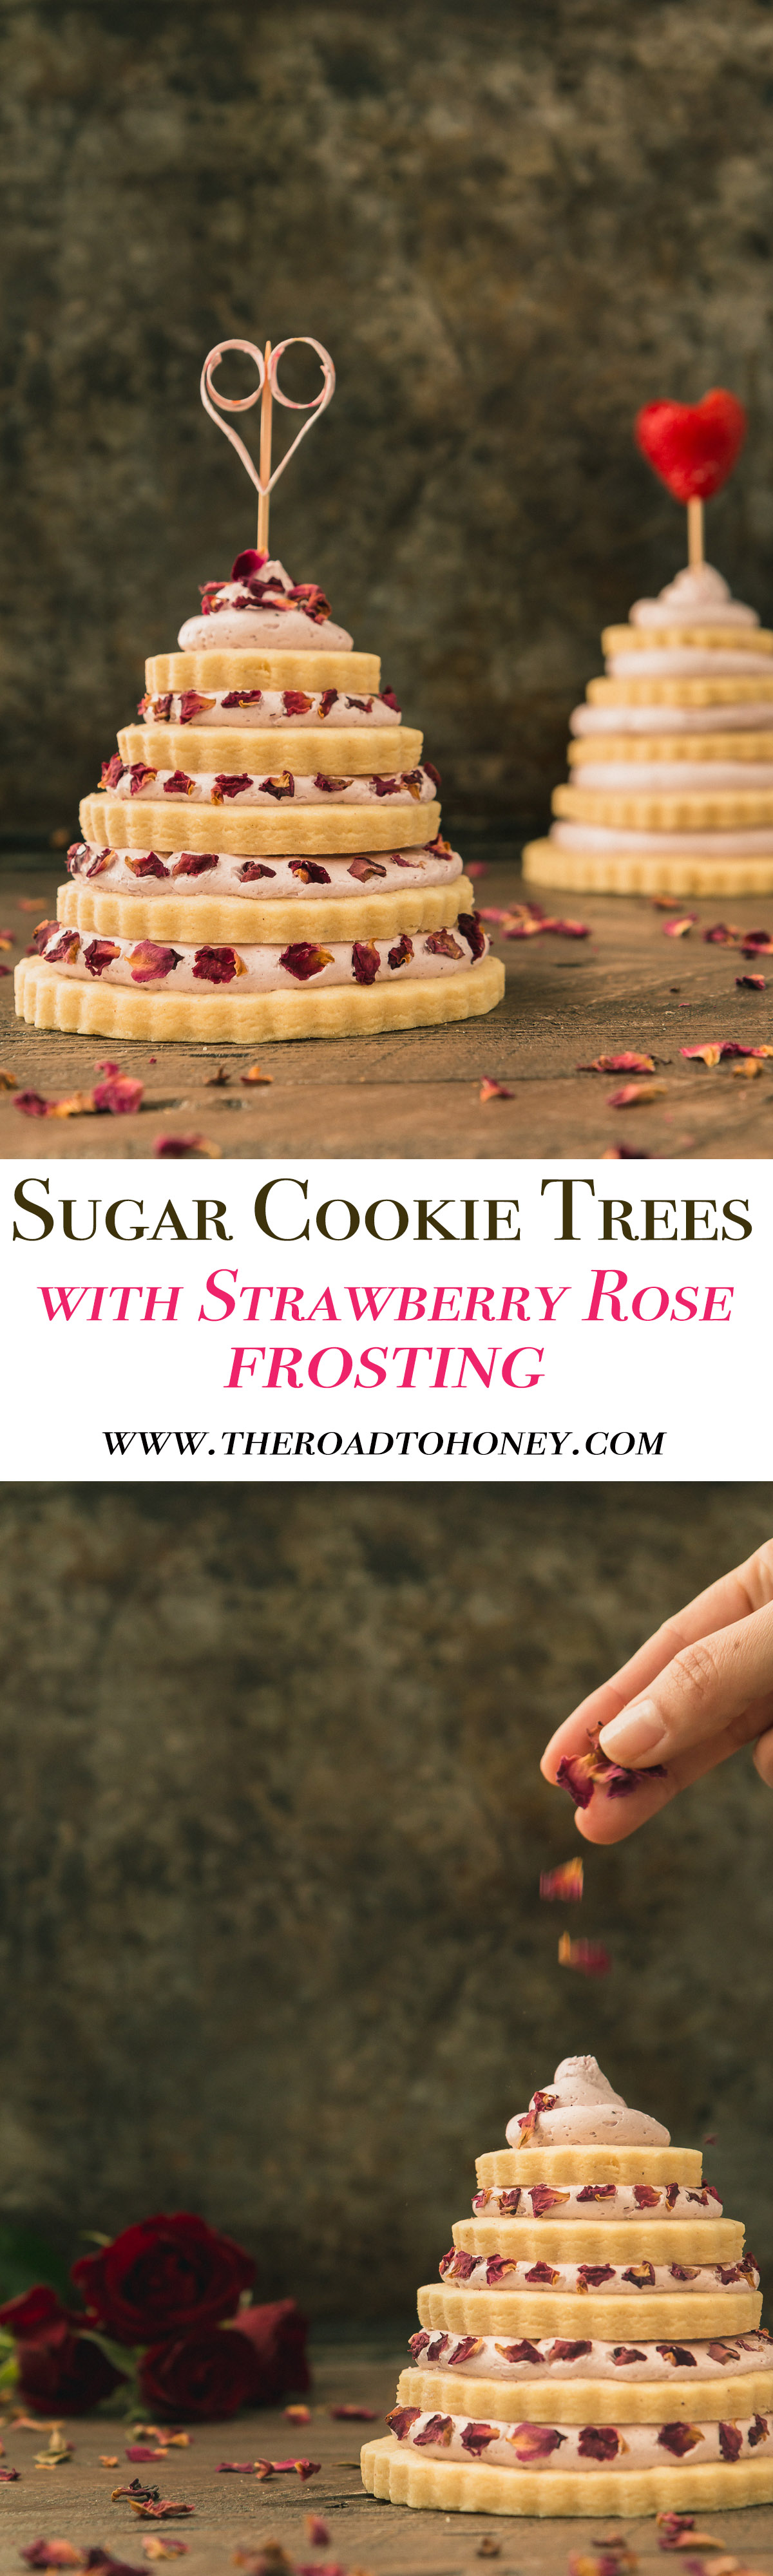 Sugar Cookie Trees with Strawberry Rose Frosting - These sugar cookie trees are made of tiers of sweet almond sugar cookies & topped with a dreamy strawberry & rose buttercream frosting. Perfect for Valentines Day or any other special occasion.